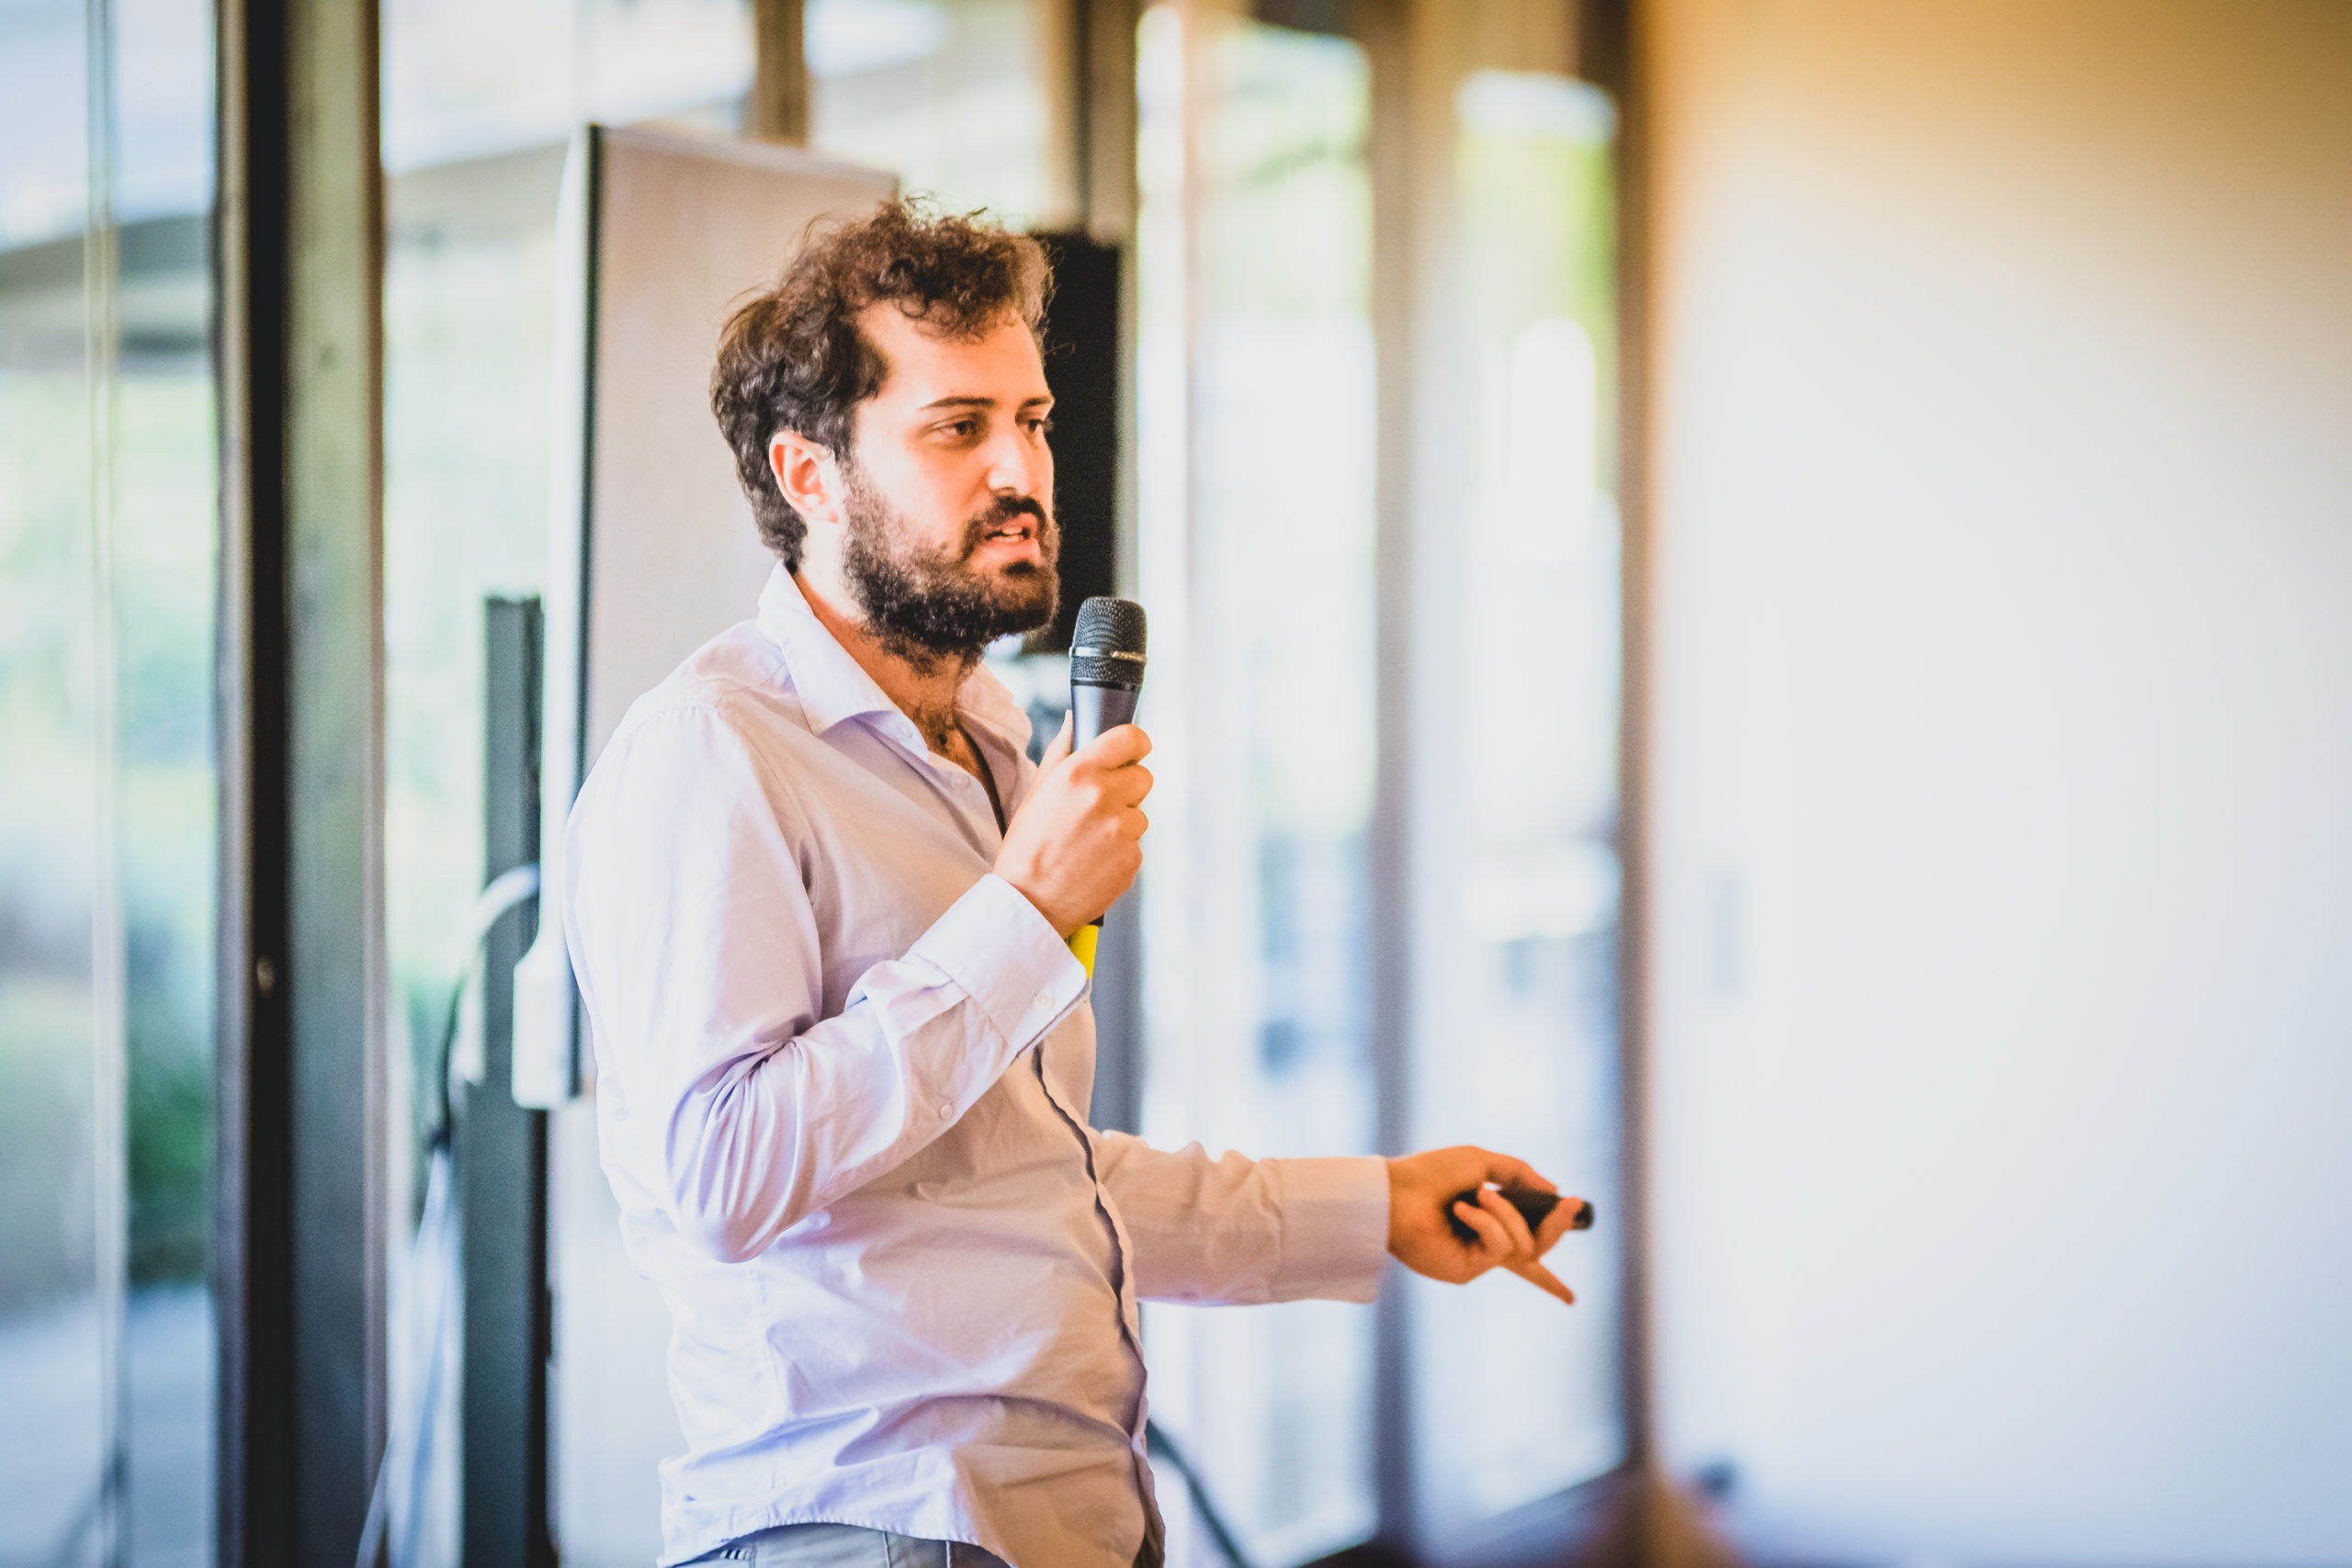 Bernardo, founder and CEO of MyPolis, at the Demo Day of Maze X, the pan-european impact startup accelerator based in Lisbon, in May at the Calouste Gulbenkian Foundation